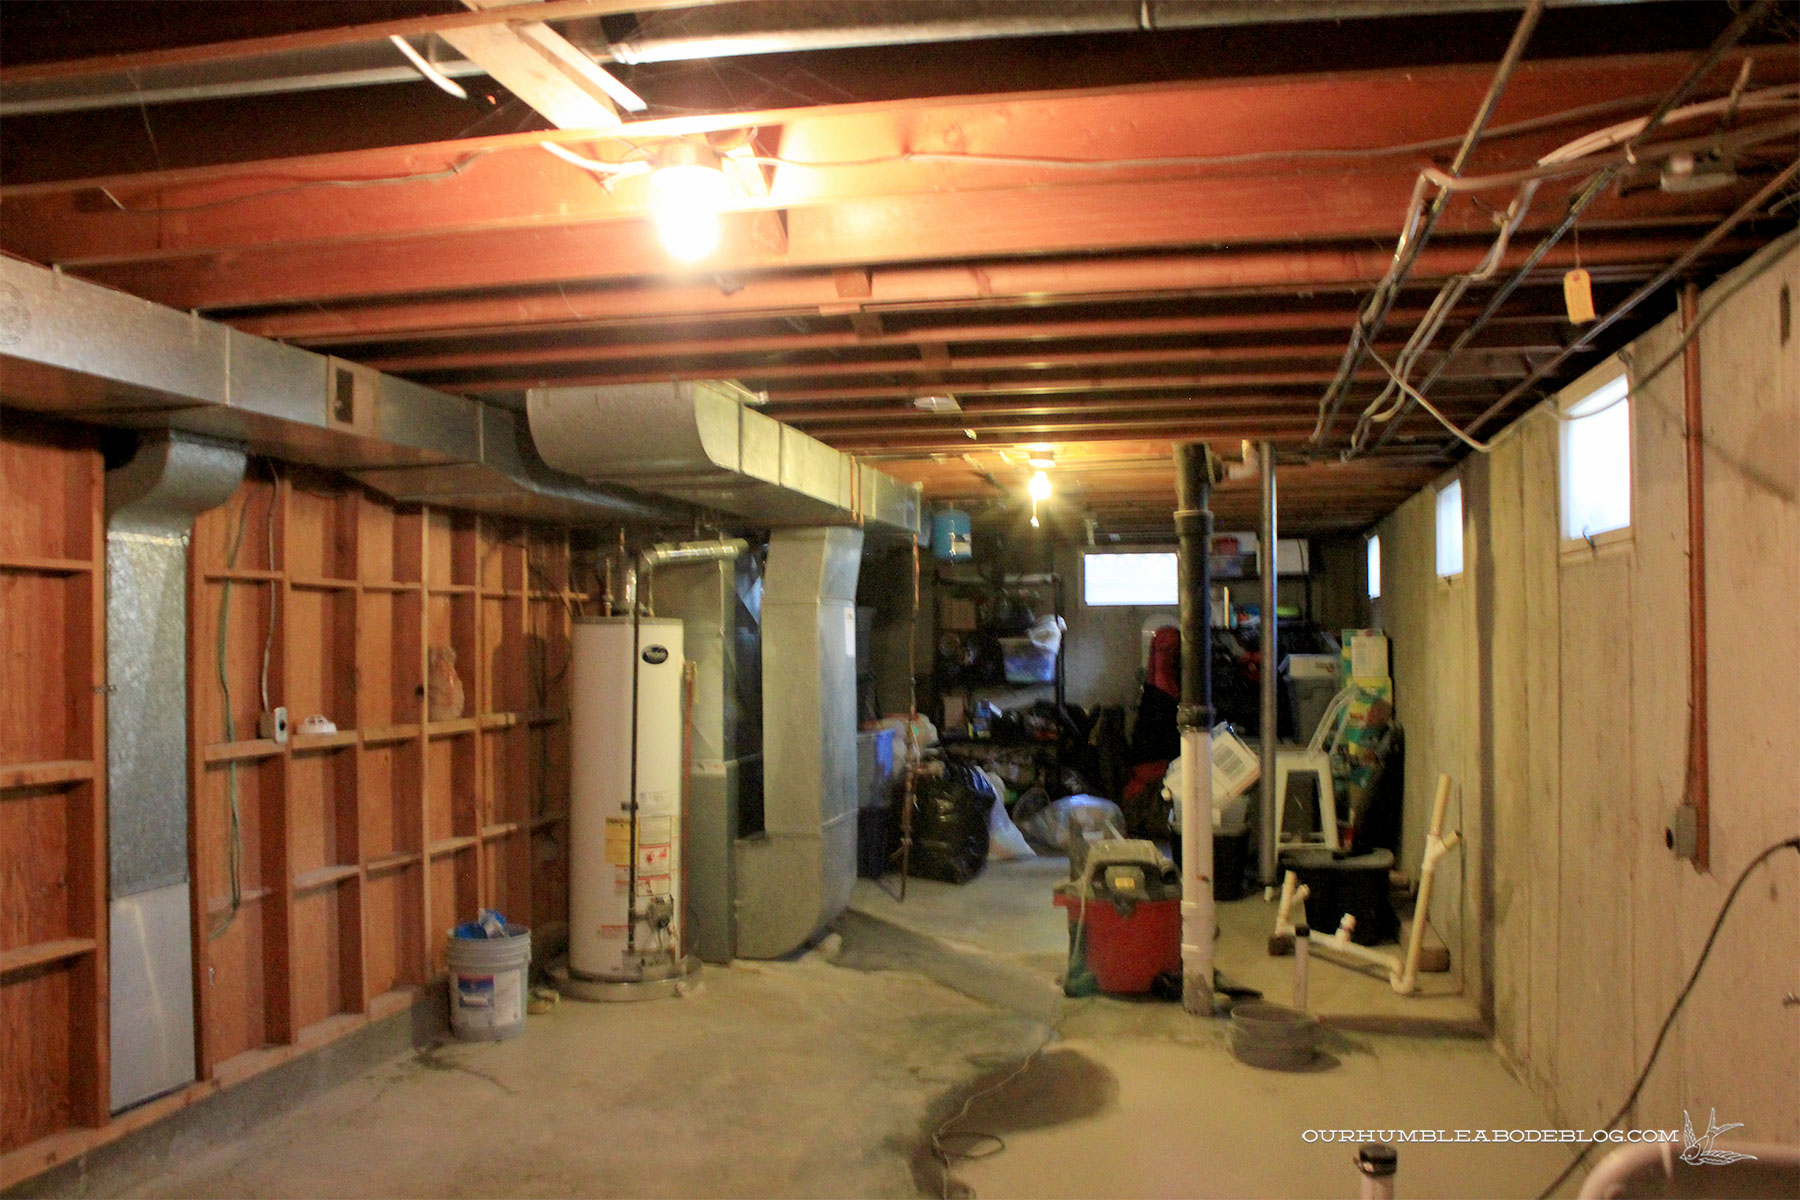 Basement-Before-Toward-Bedroom-Space